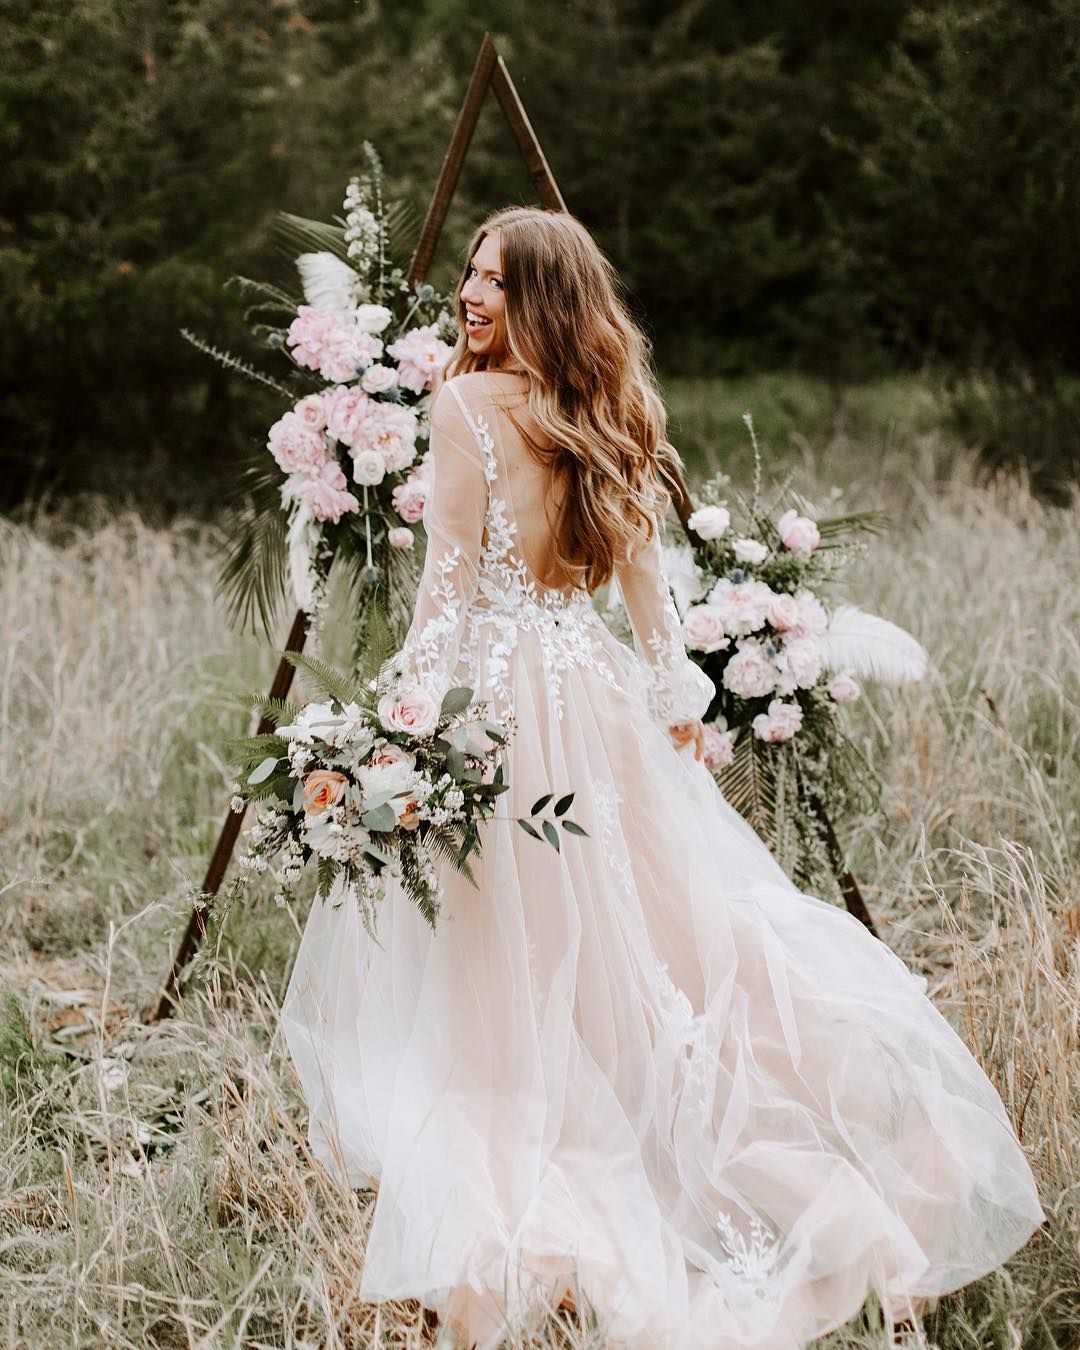 Pin By A M Y On Save The Date Summer Wedding Dress Outdoor Cute Wedding Dress Feminine Wedding [ 1350 x 1080 Pixel ]